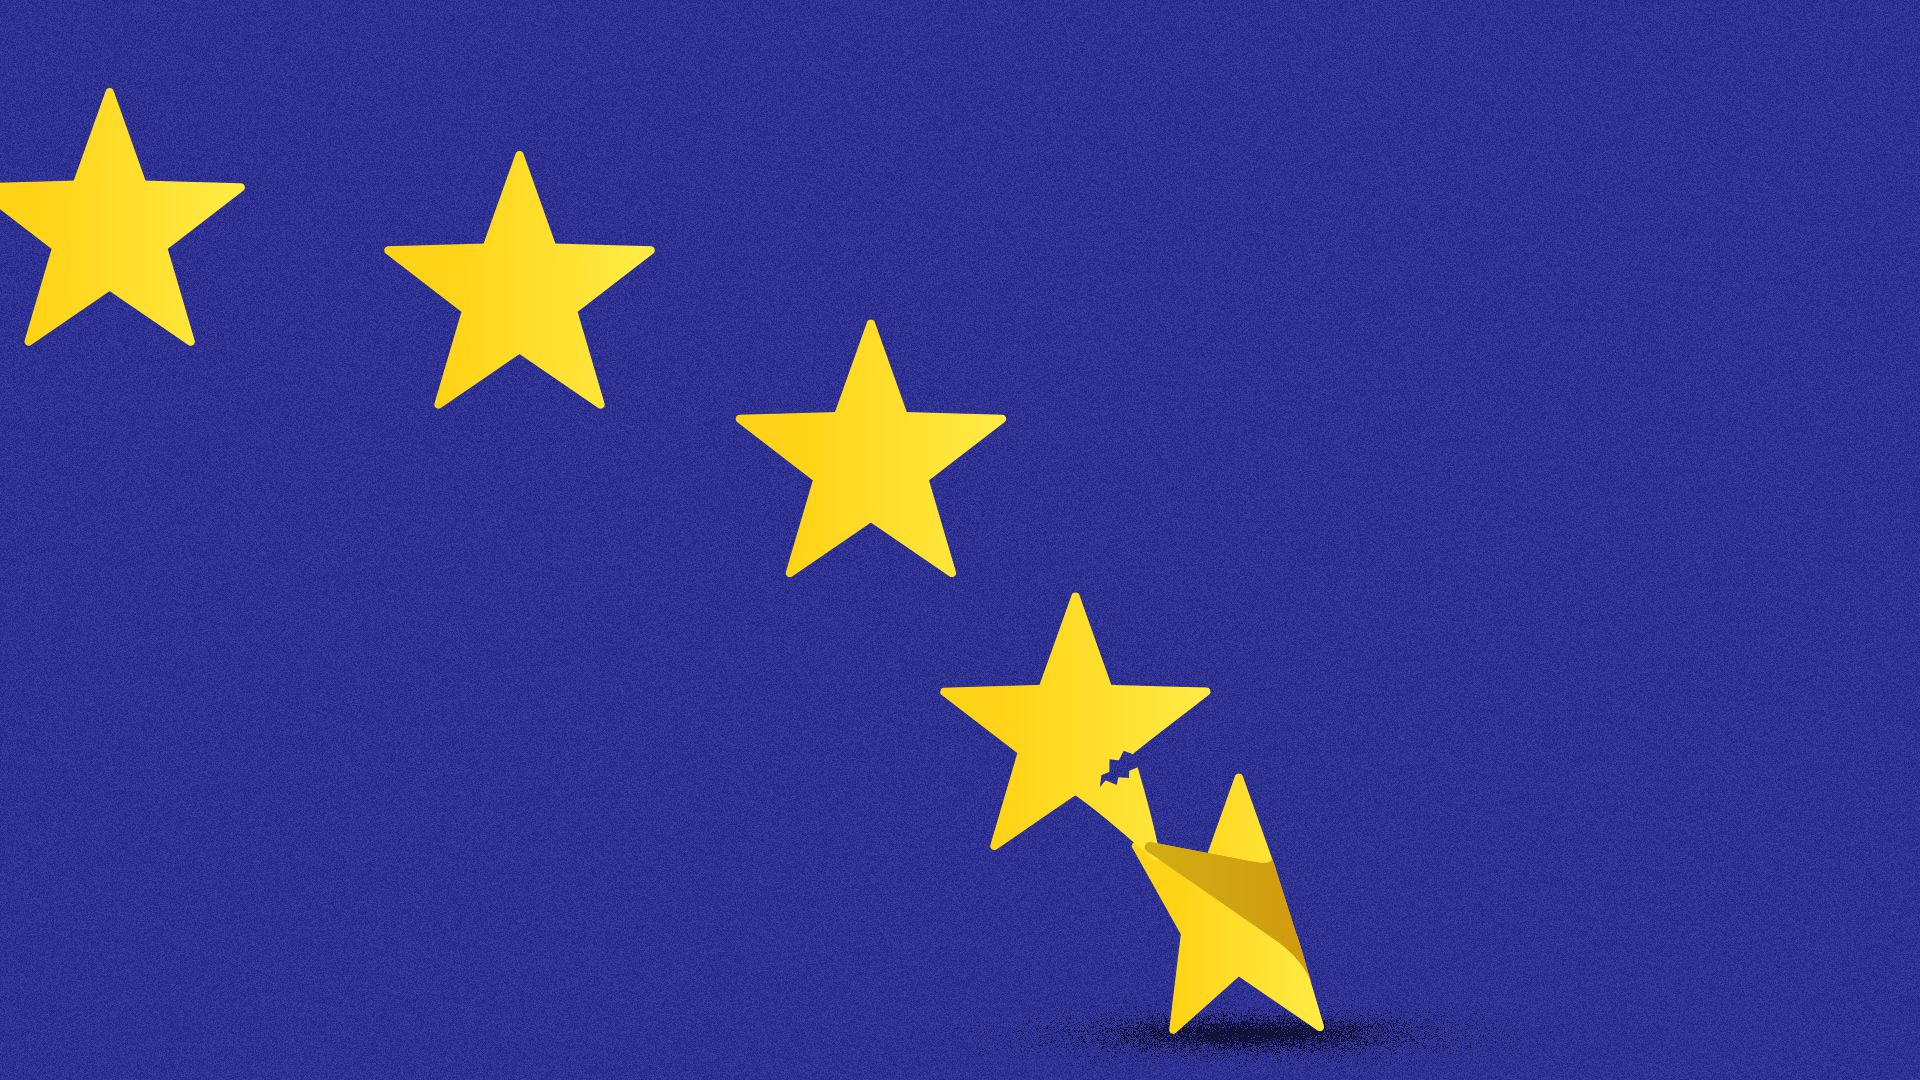 Illustration of the EU flag stars with one star pulling the leg off of another star.